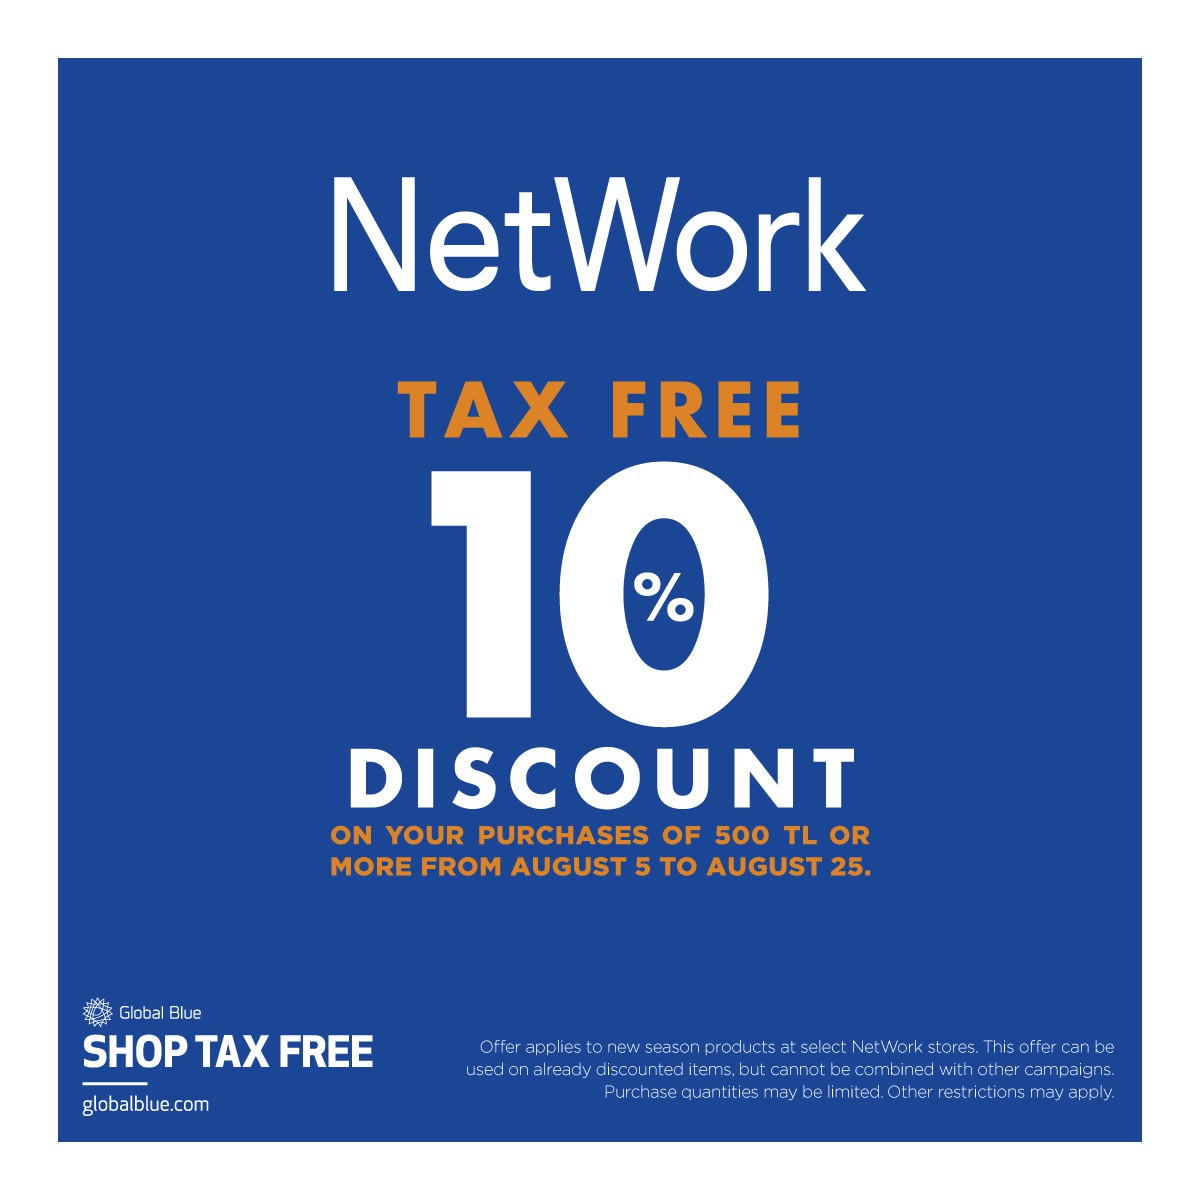 NetWork tax free 10% discount on your purchases of 500 TL or more from august 5 to august 25.